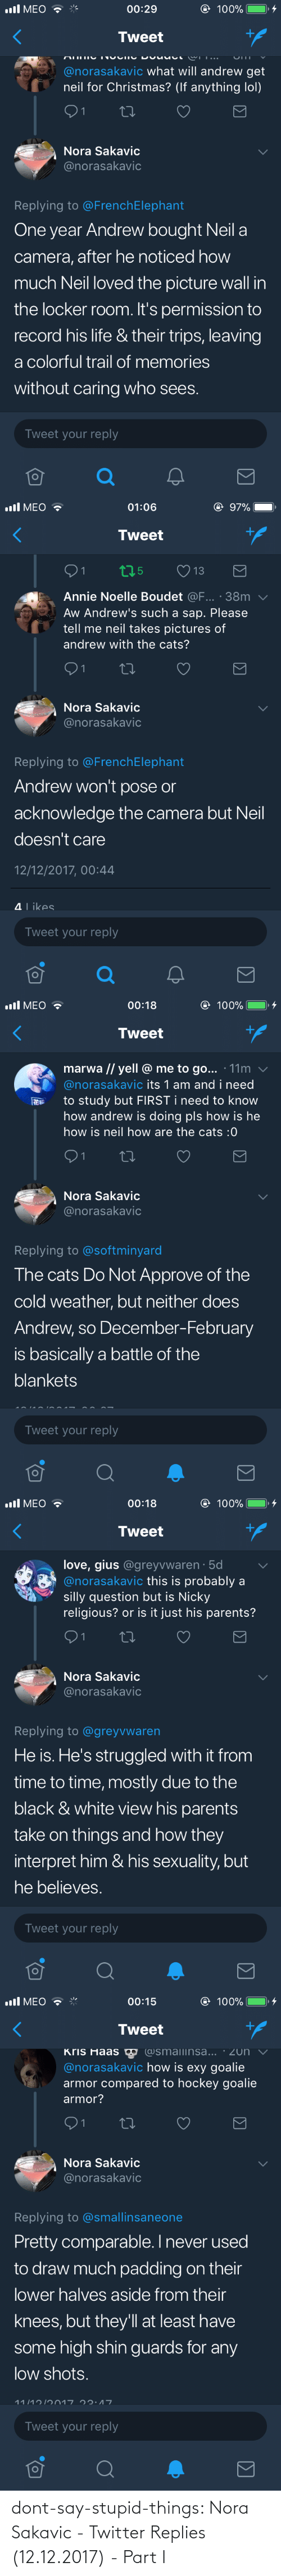 say: dont-say-stupid-things:  Nora Sakavic - Twitter Replies (12.12.2017) - Part I